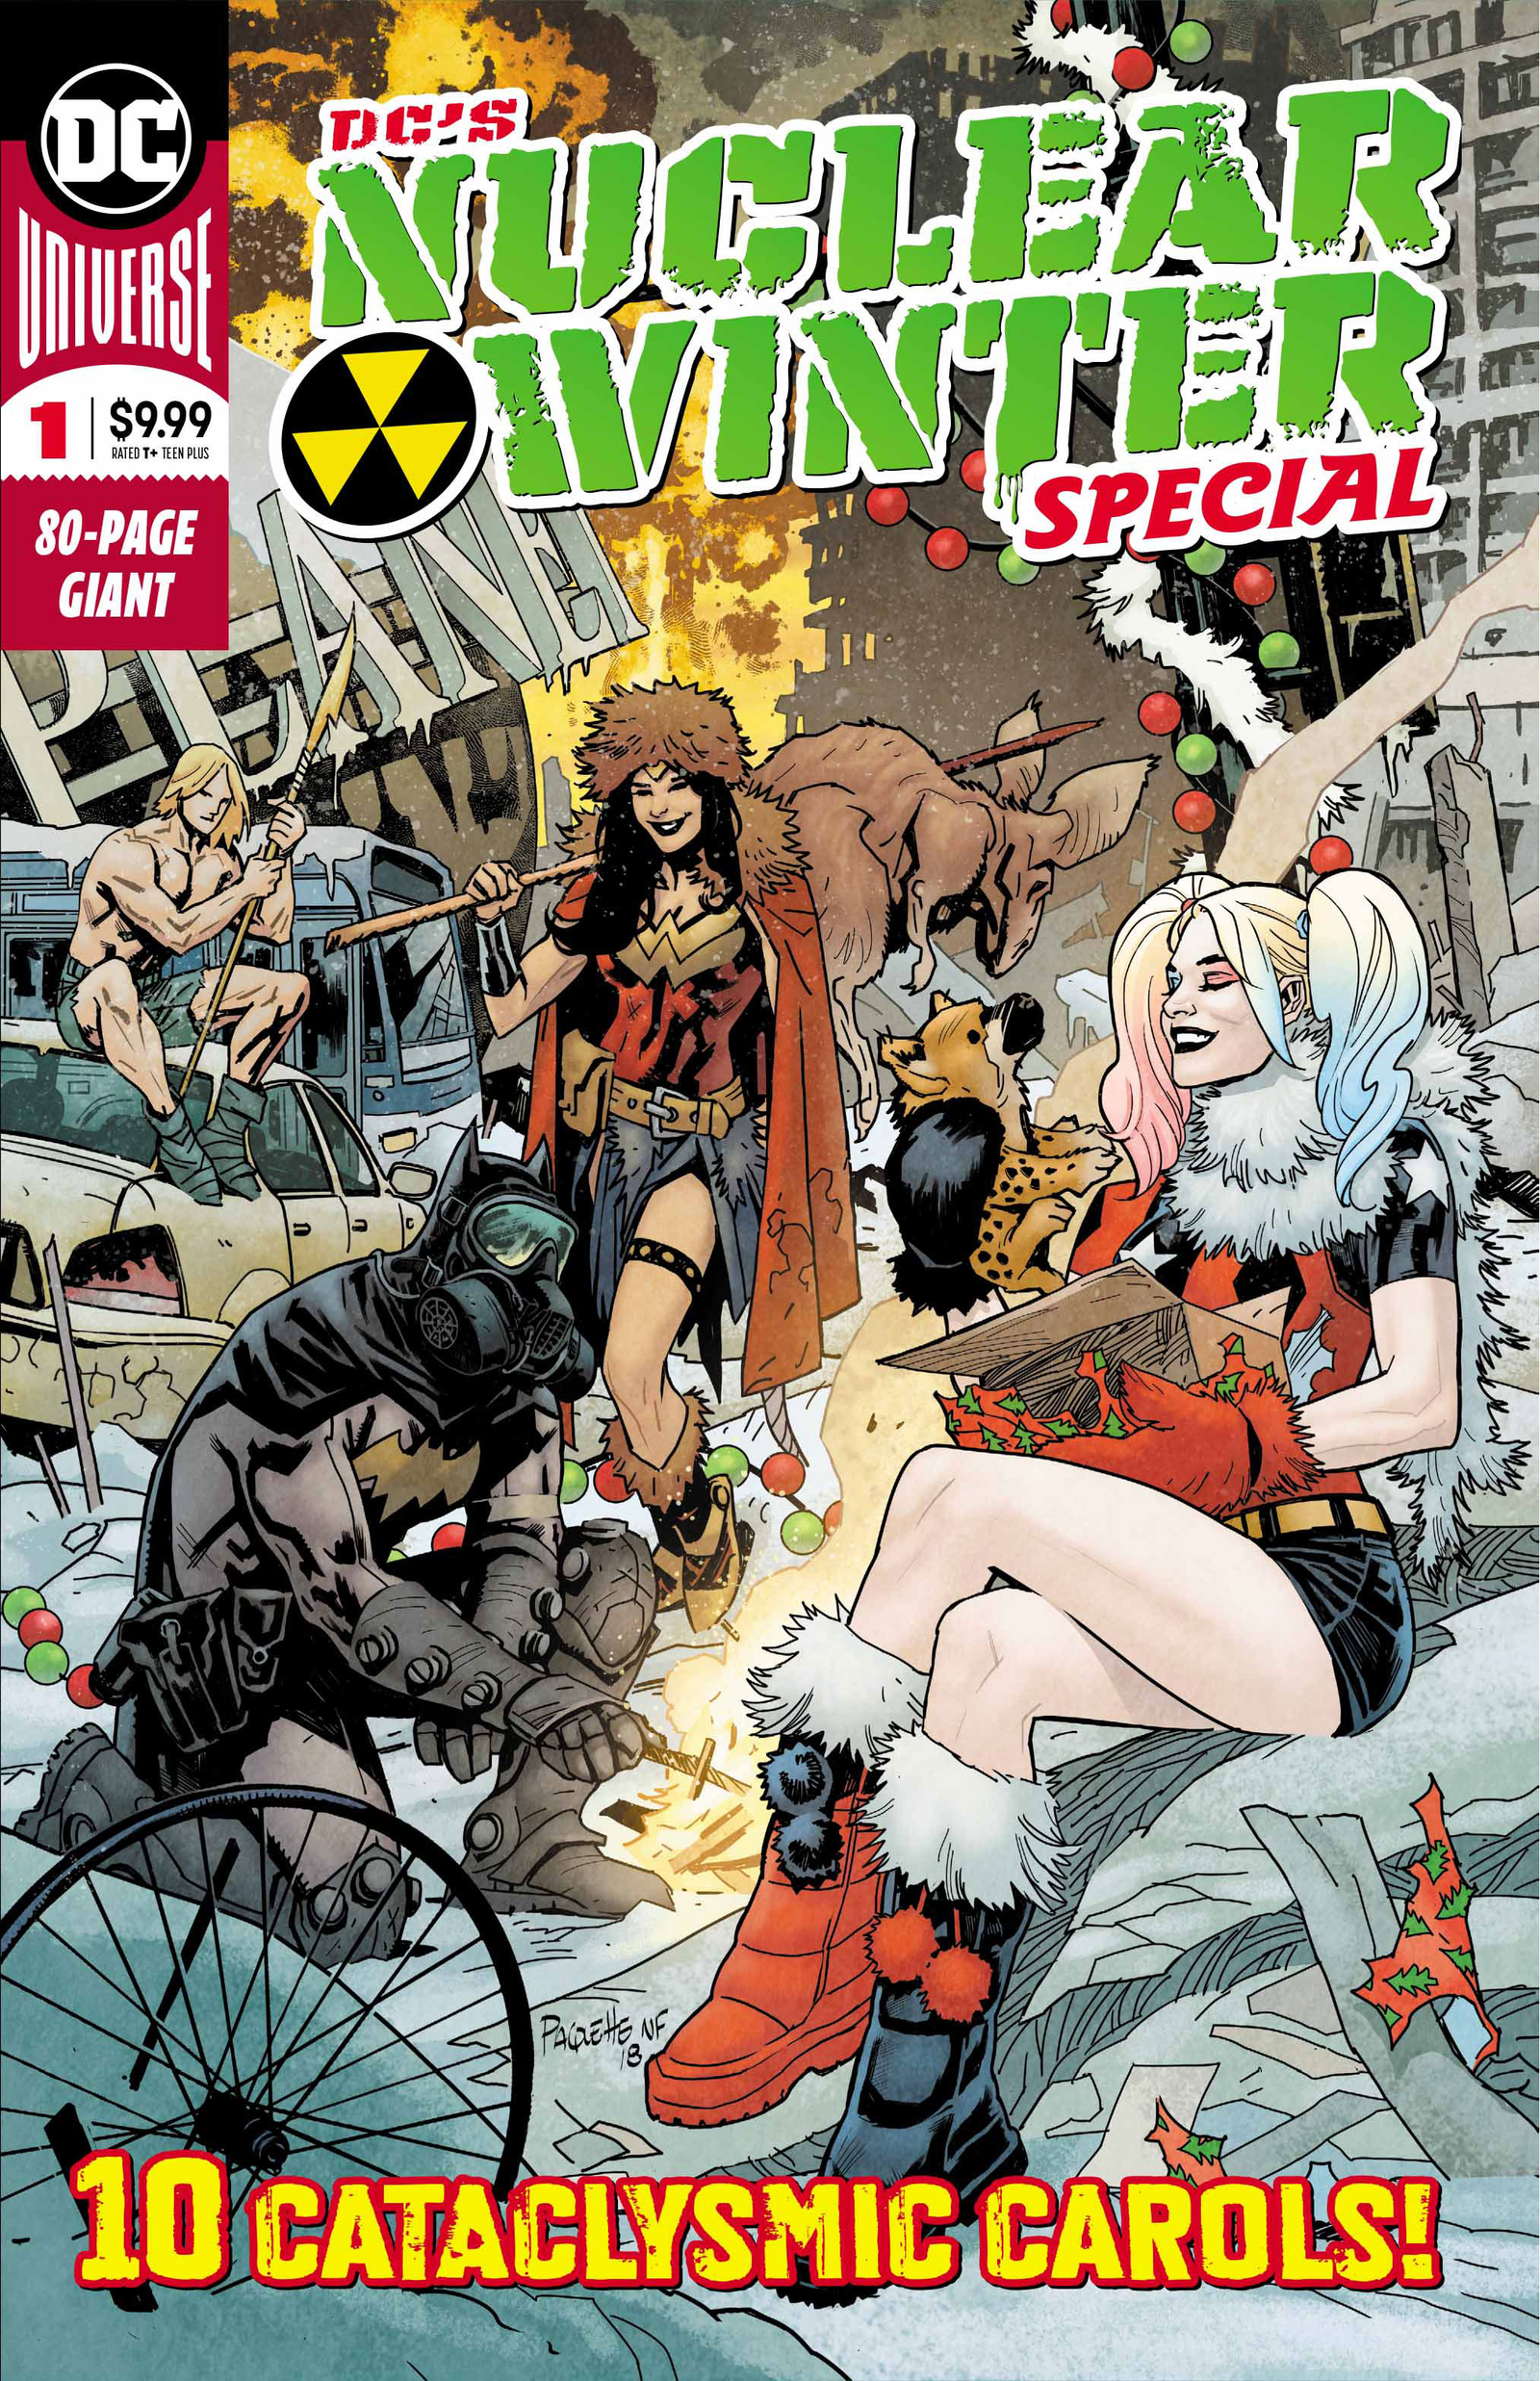 Cover by Yanick Paquette and Nathan Fairbairn